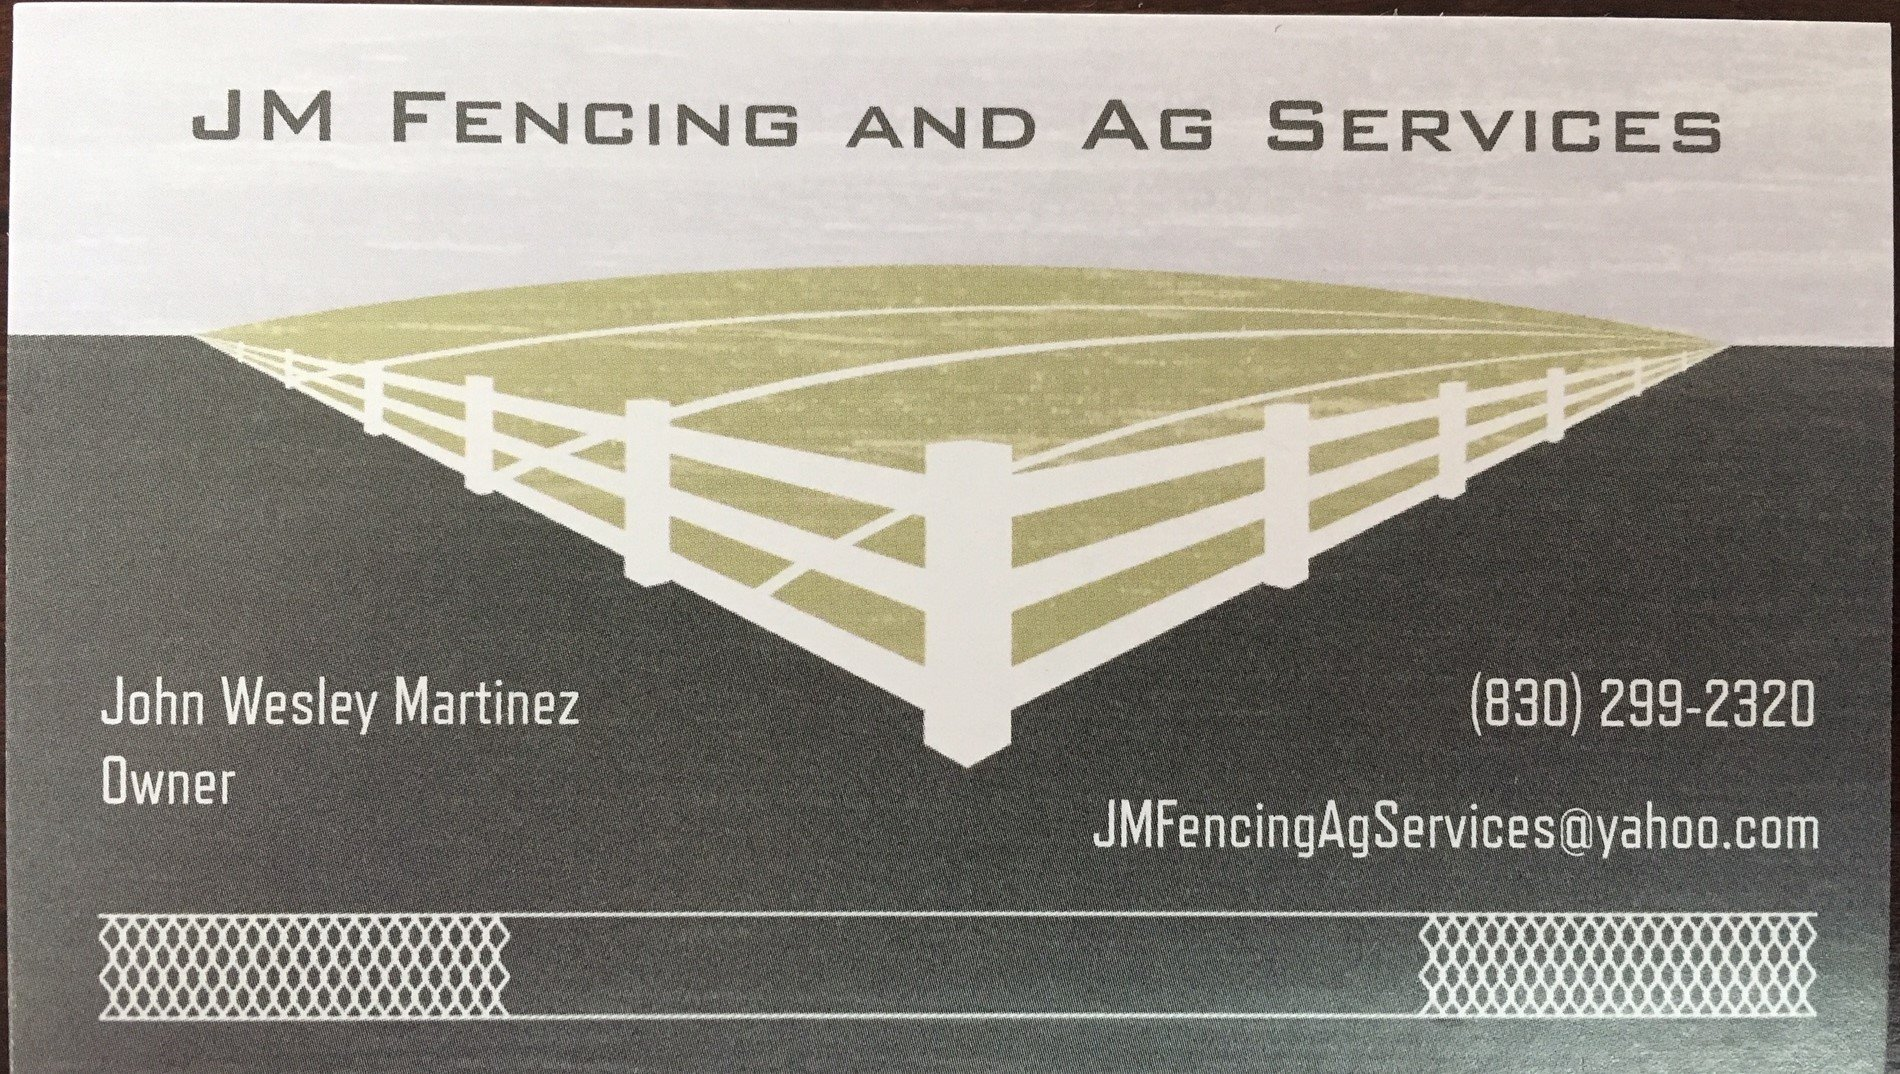 JM Fencing and Ag Services JMFencingAgServices@yahoo.com 830 299-2320